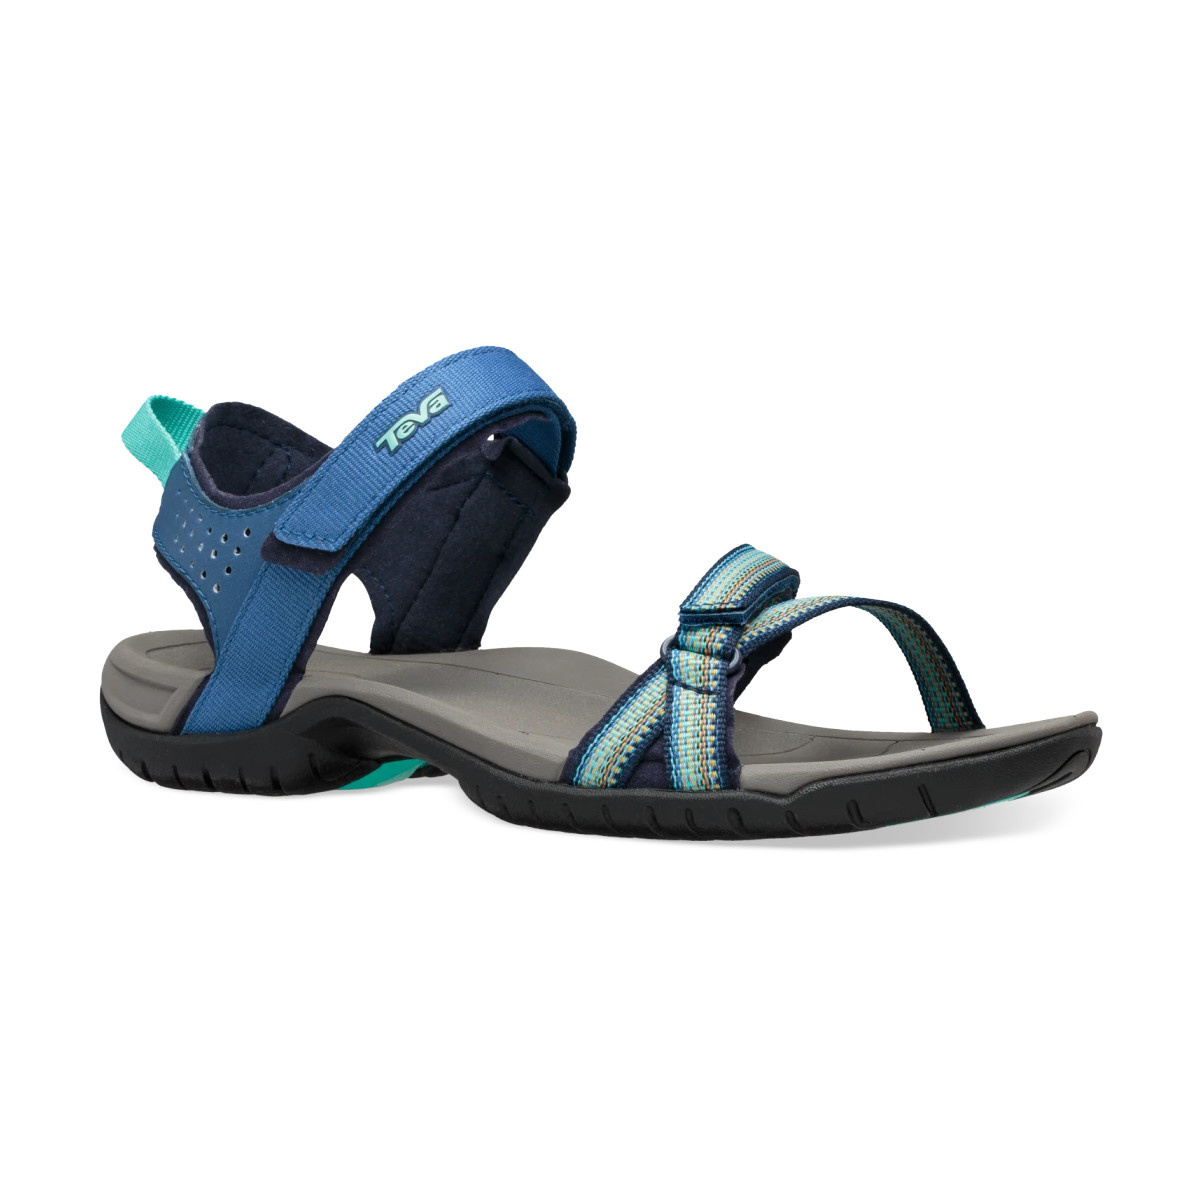 TEVA Teva Women's Verra Dark Blue